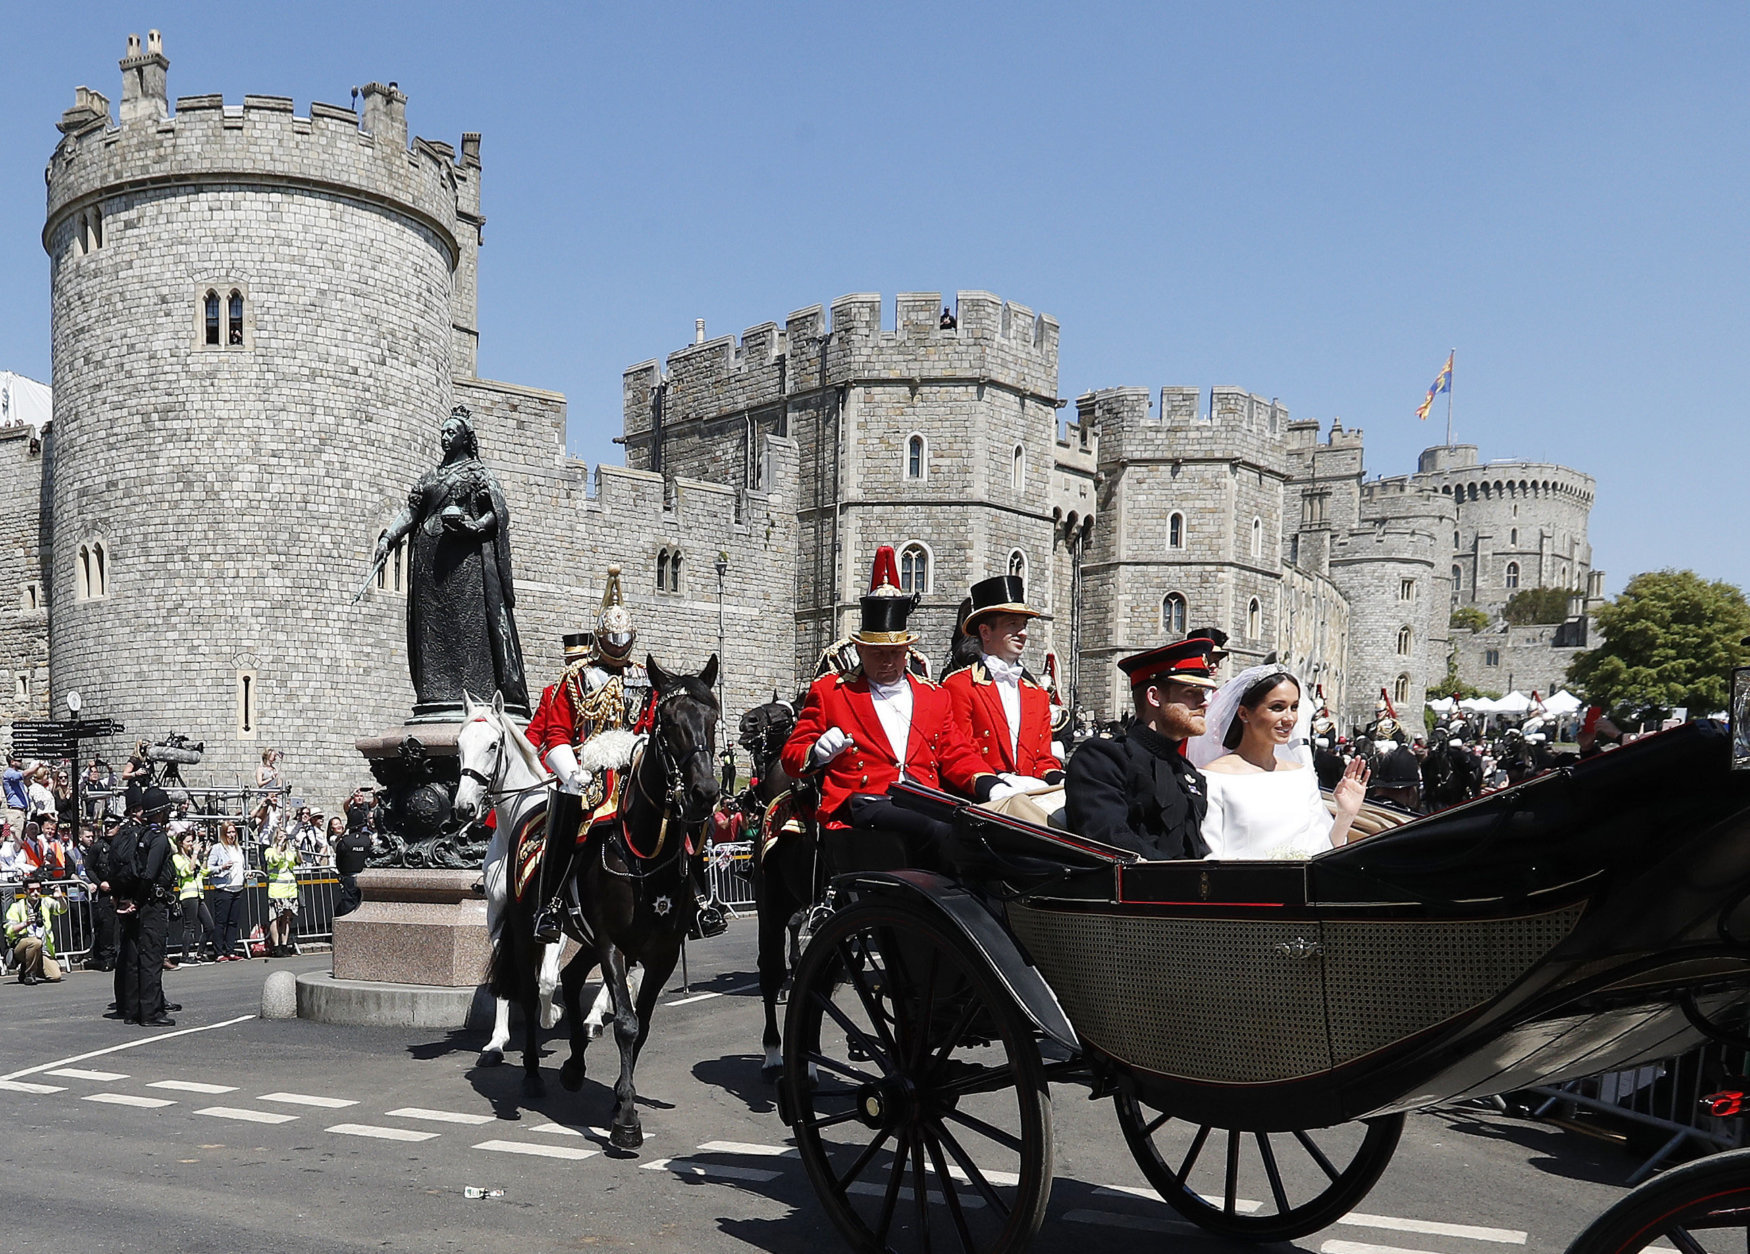 Britain's Prince Harry and Meghan Markle, right, leave Windsor Castle in a carriage after their wedding ceremony at St. George's Chapel in Windsor Castle in Windsor, near London, England, Saturday, May 19, 2018. (AP Photo/Frank Augstein, pool)